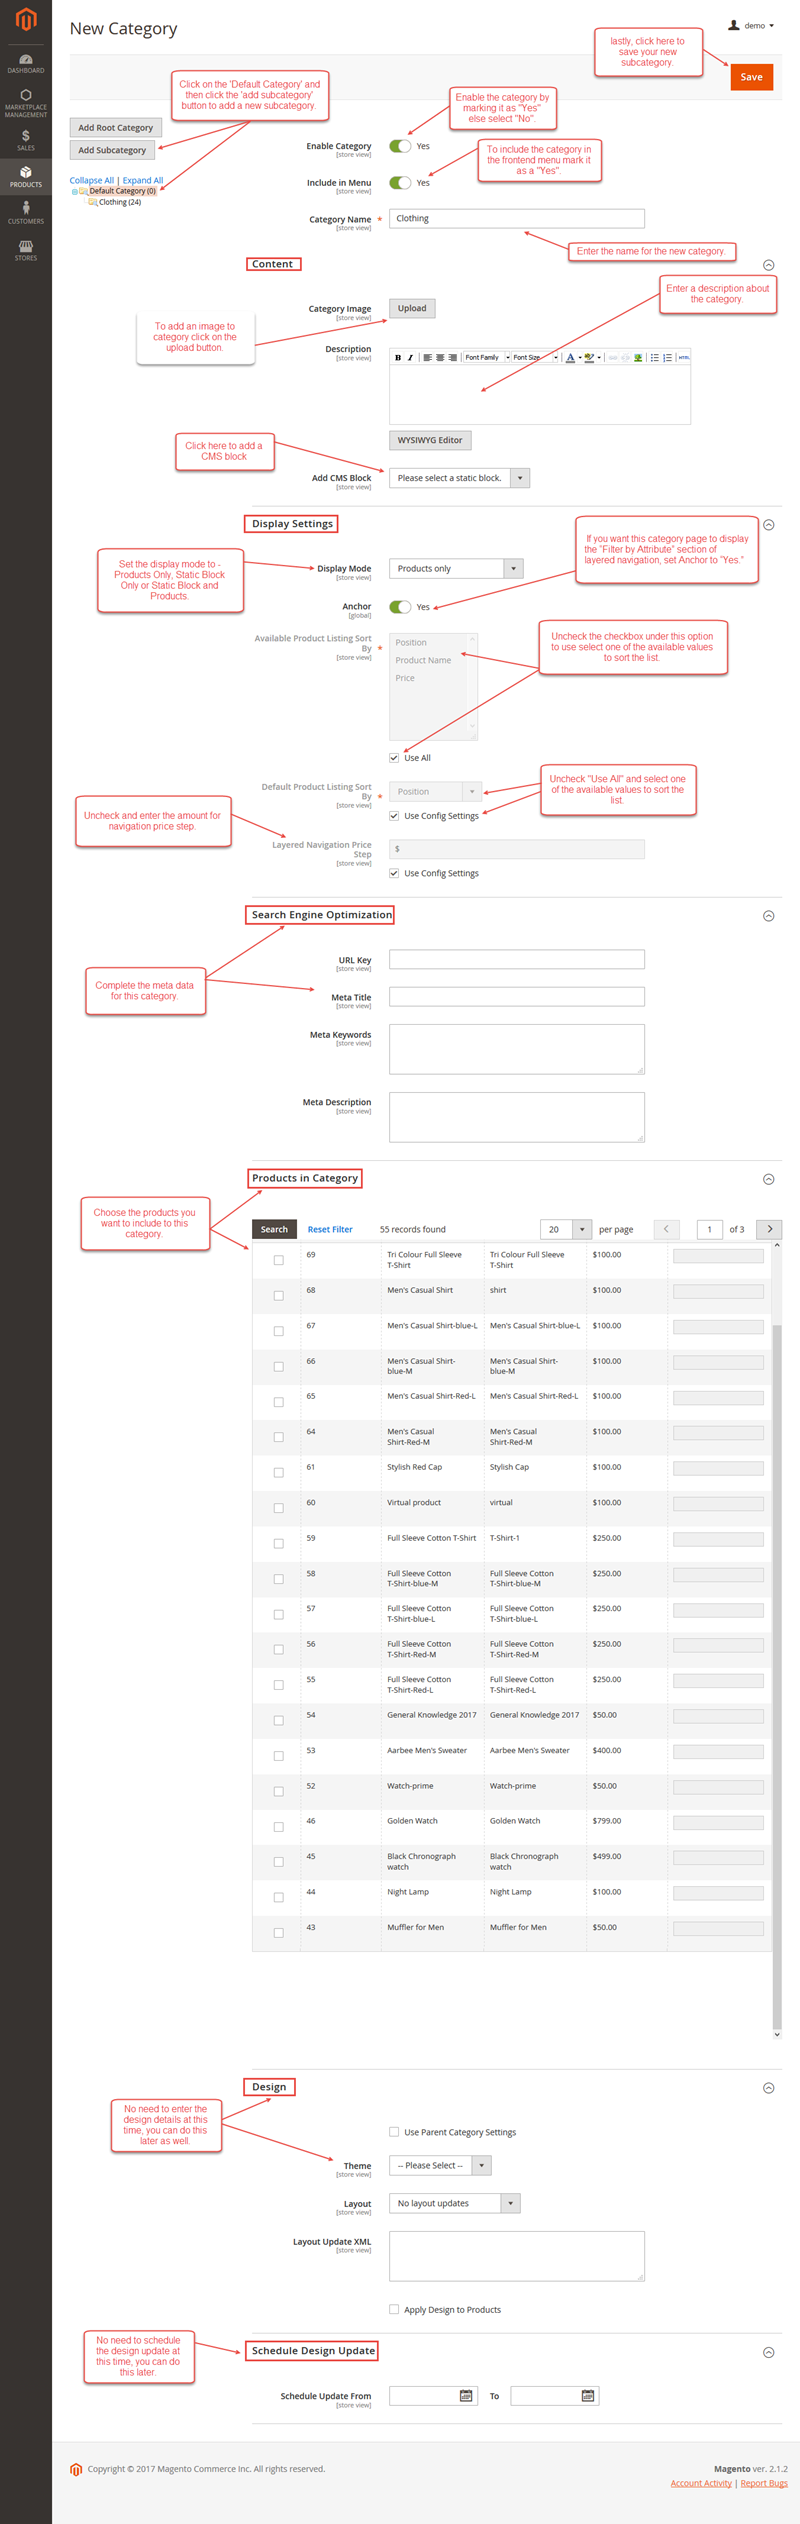 How to Create Categories in Magento2?